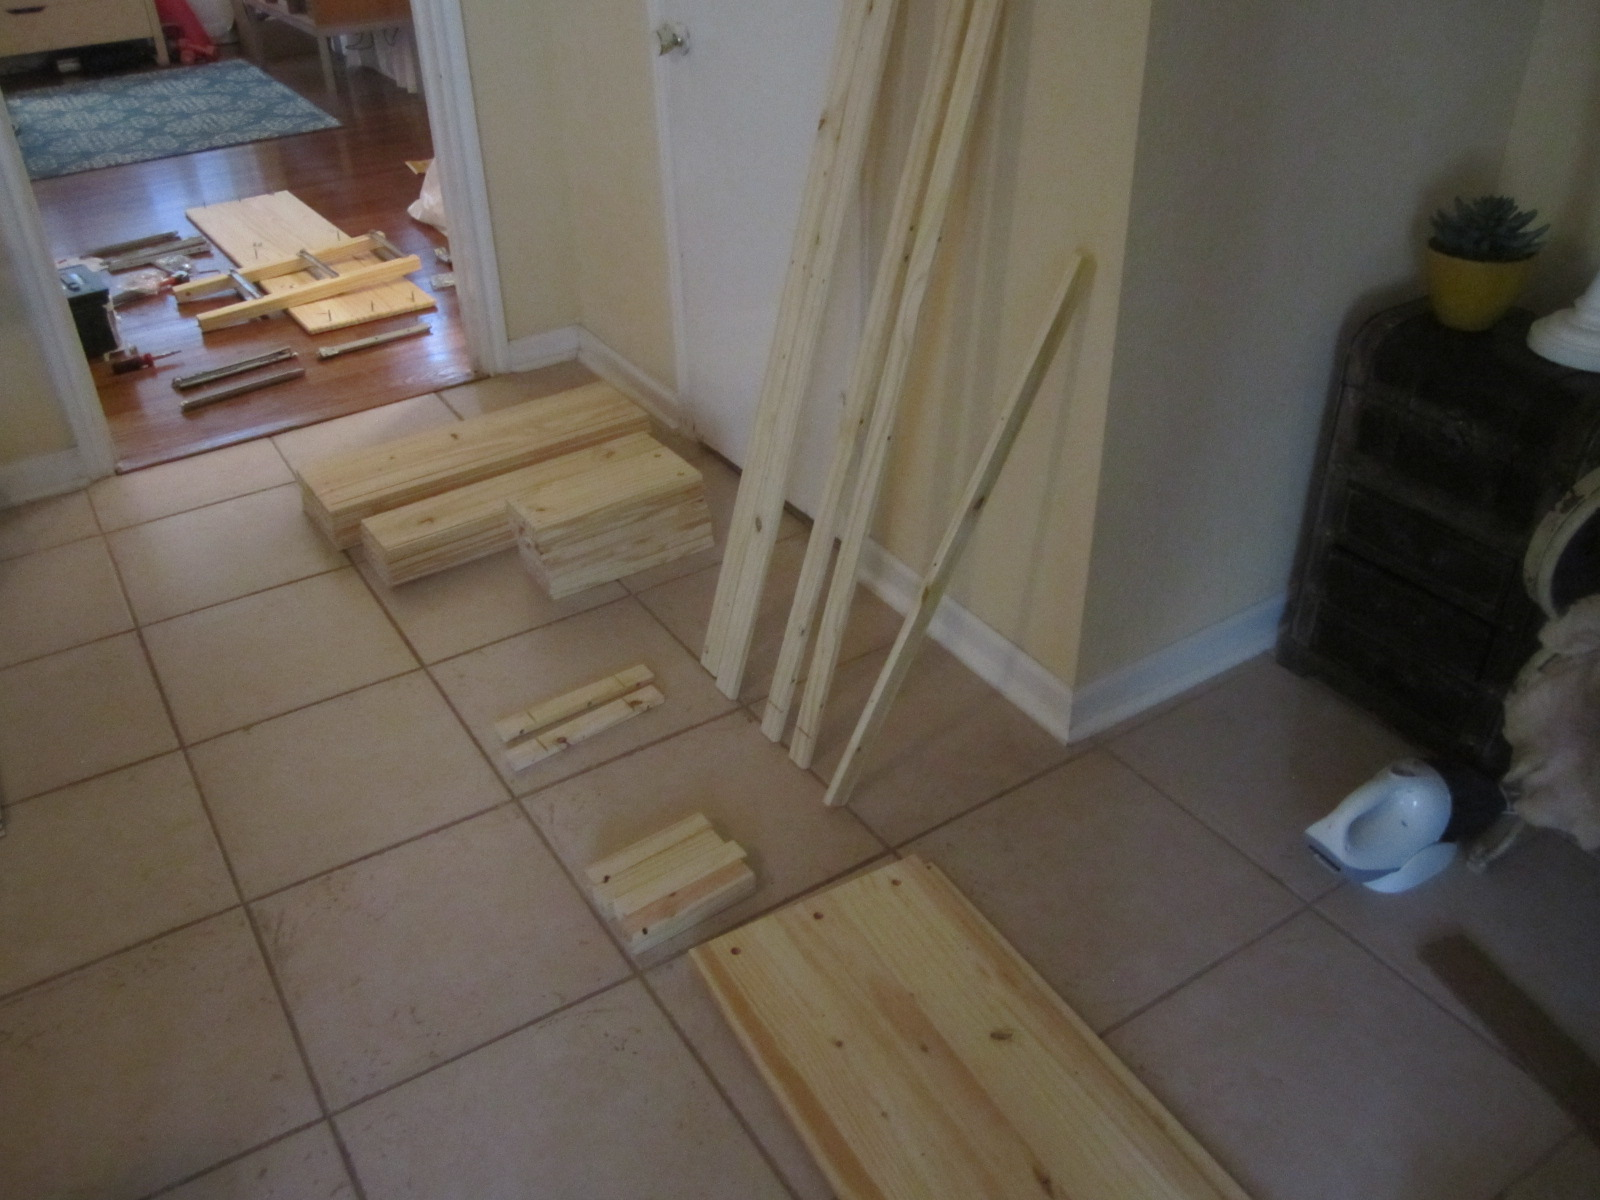 10 survival tips for ikea furniture assembly new haven blog for Tips for assembling ikea furniture